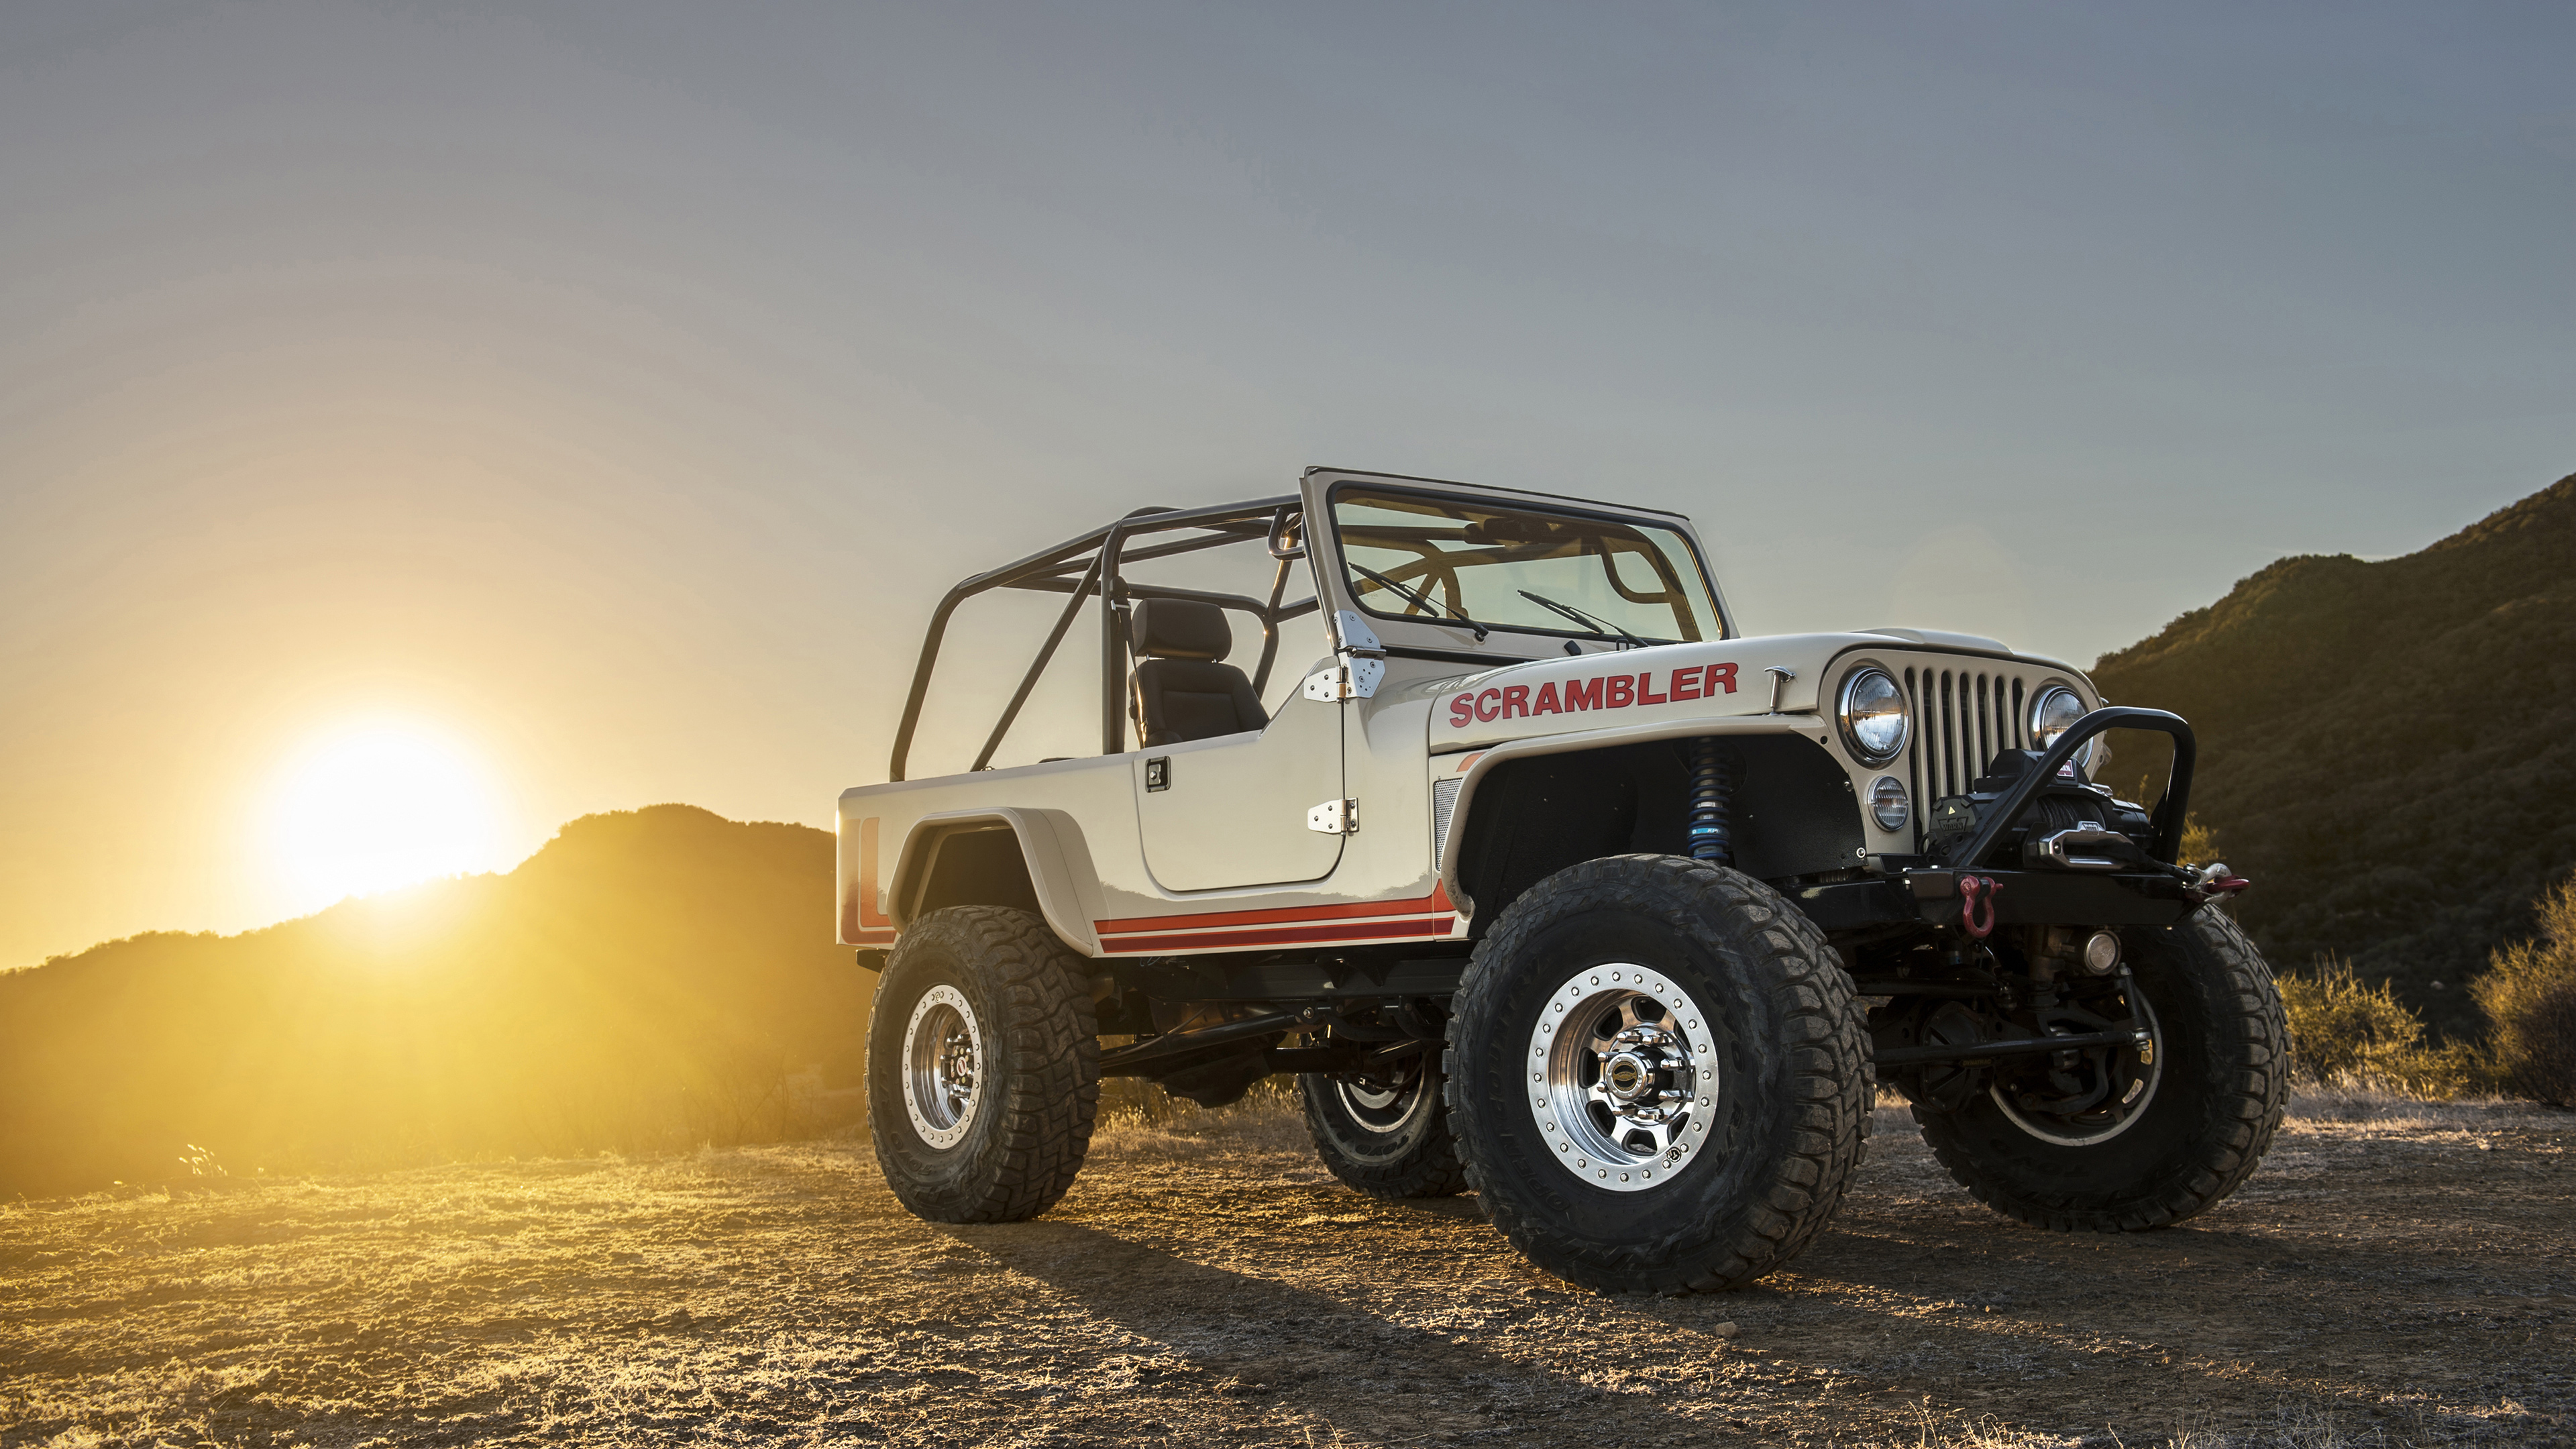 Jeep Car Images Hd: Jeep CJ8 Scrambler Wallpaper